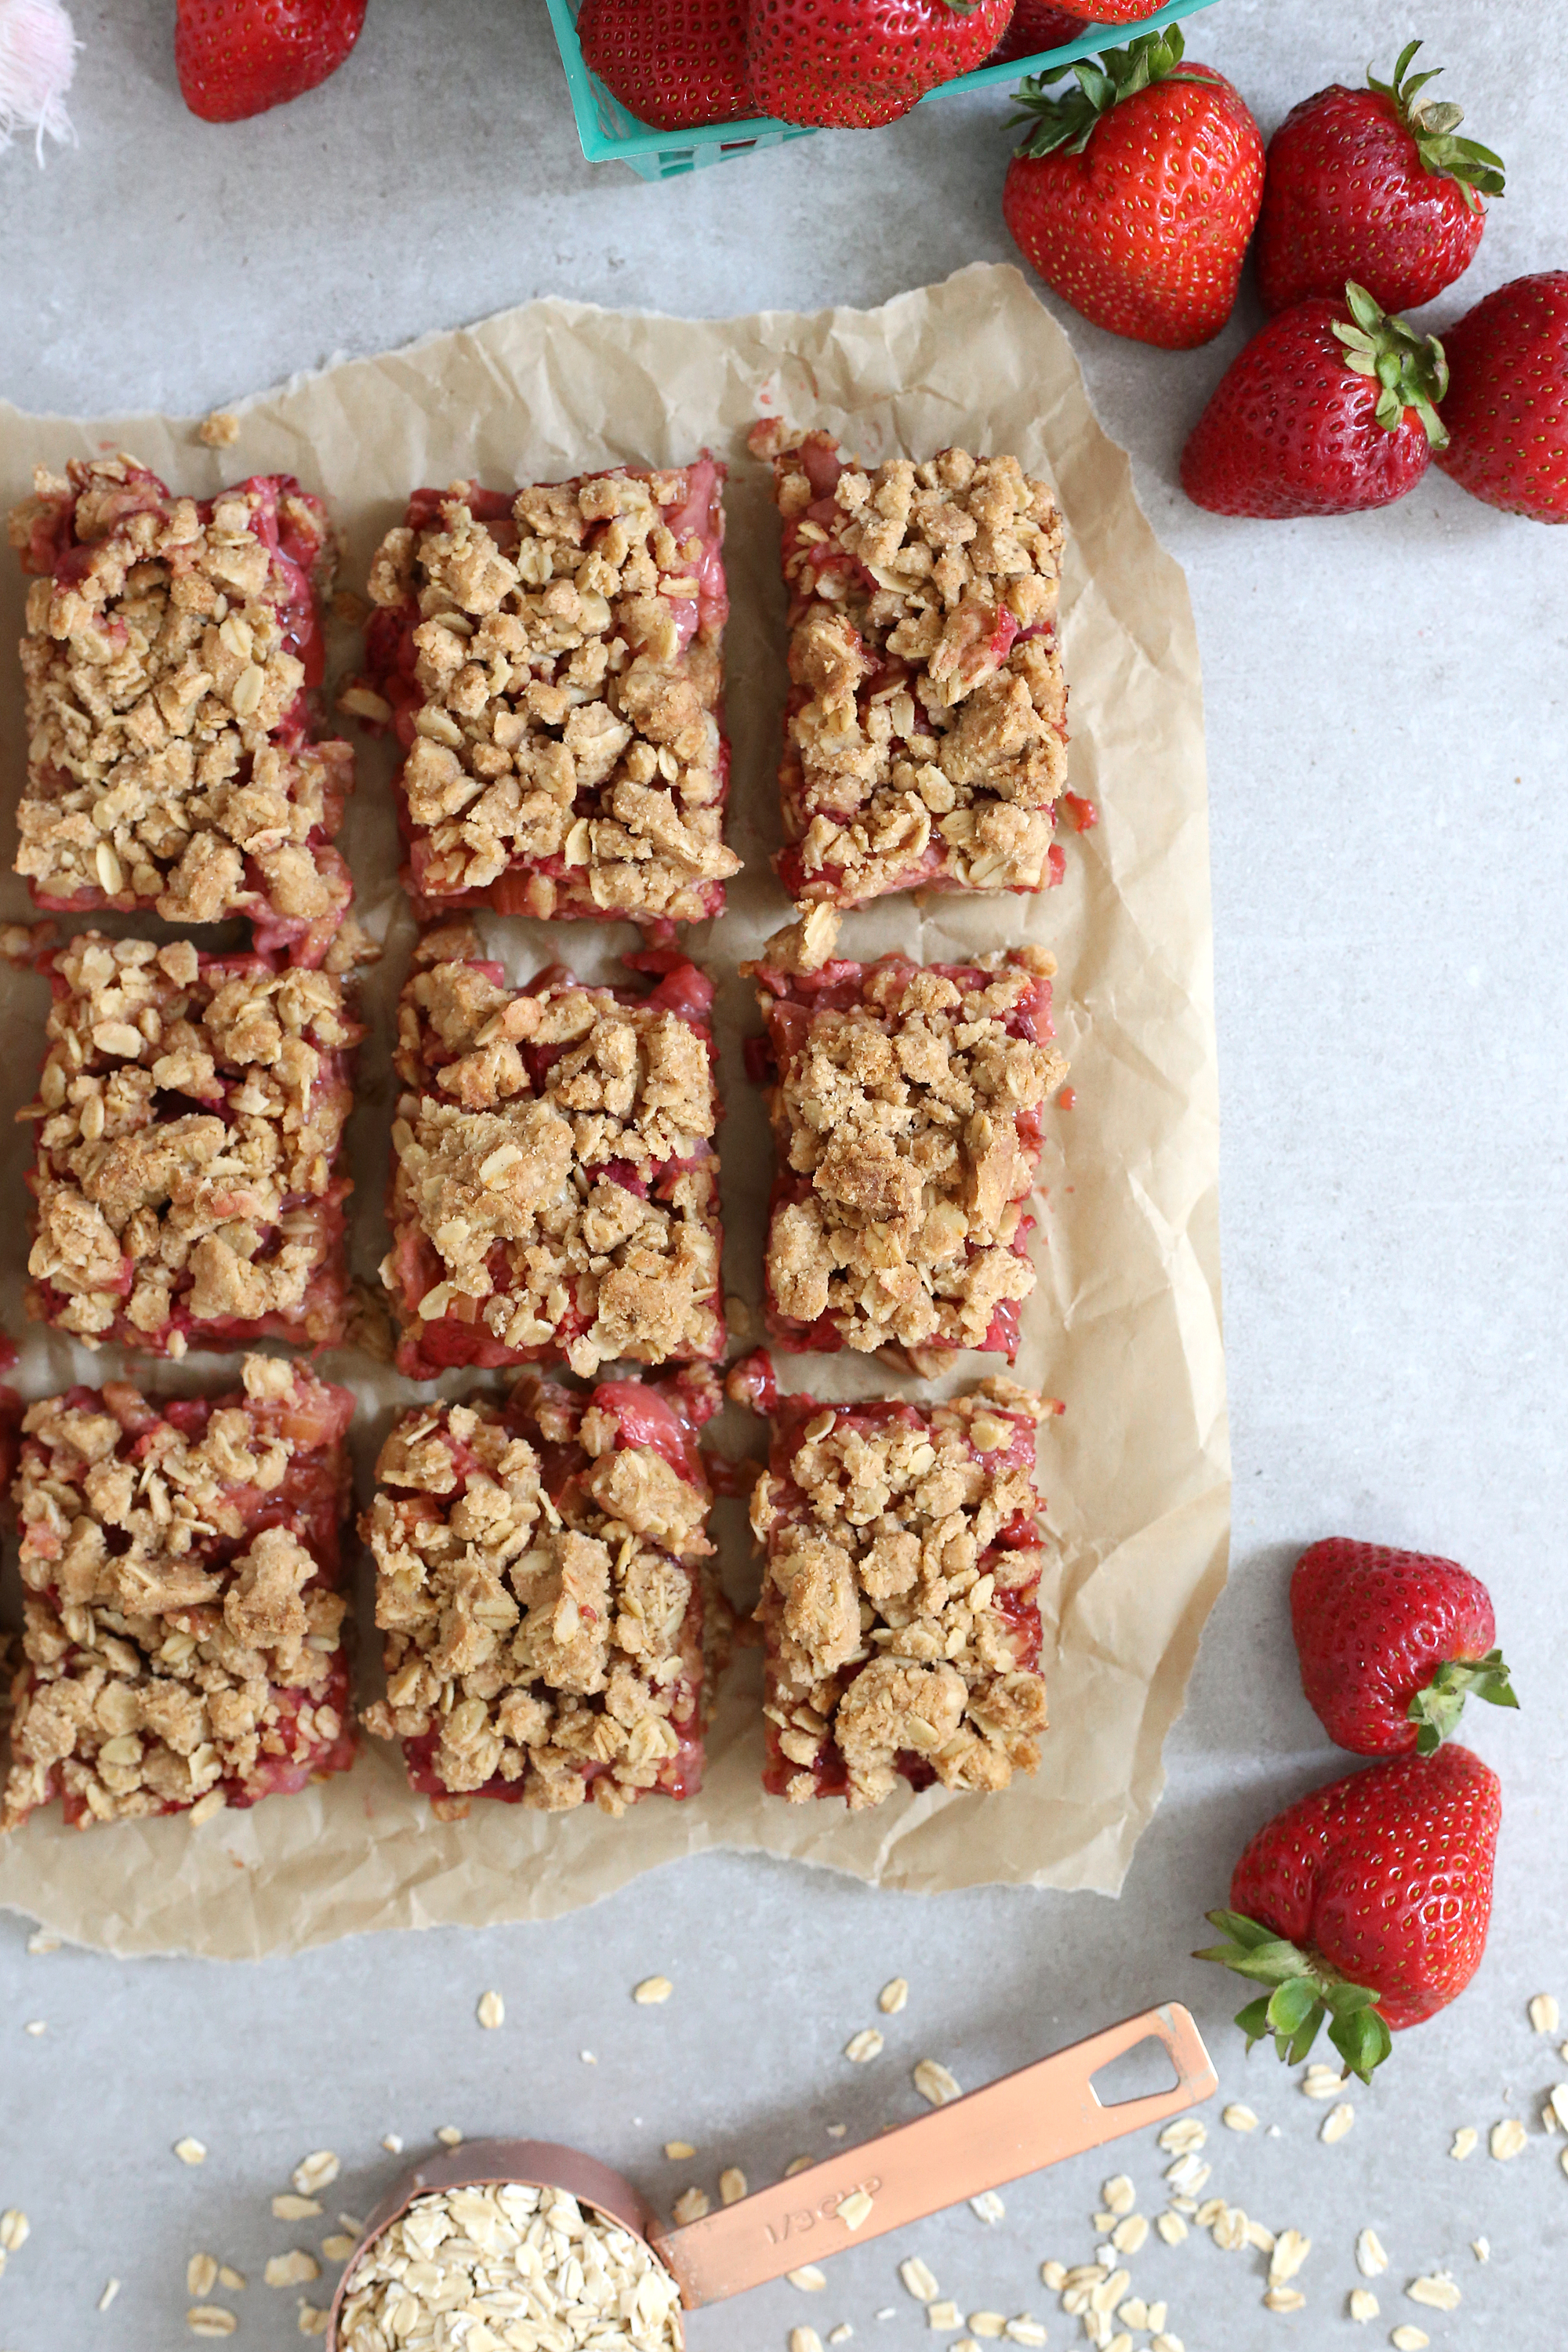 Perfect summer treat: Strawberry Rhubarb Bars! Get the recipe: Unusuallylovely.com